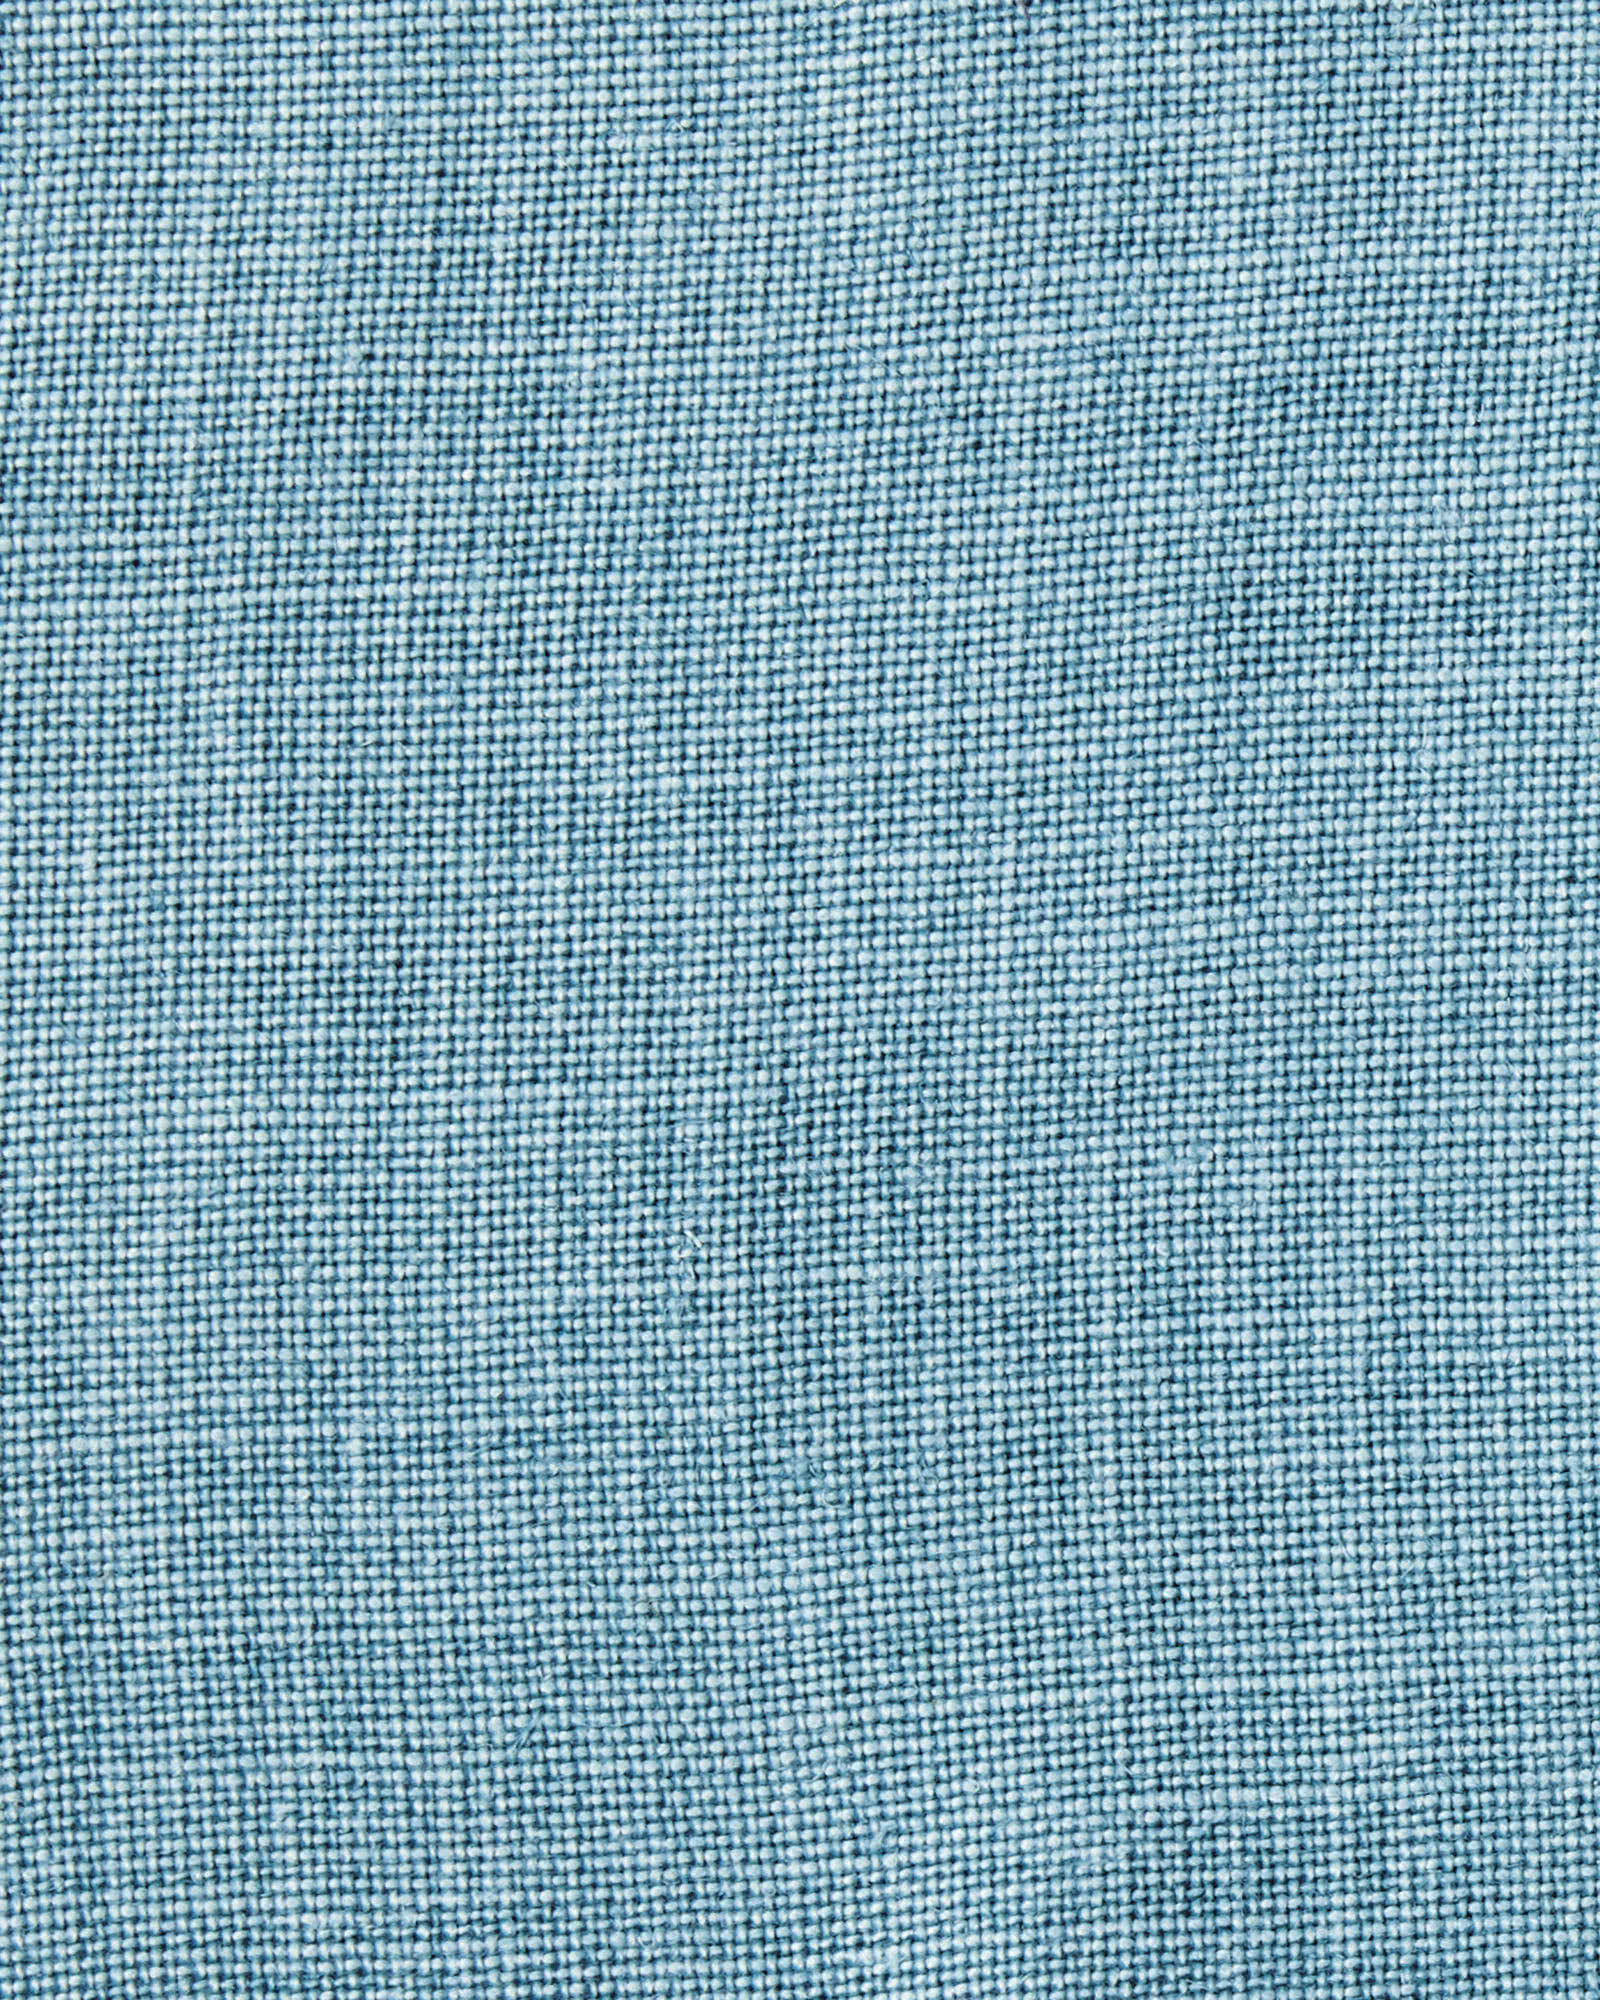 Washed Linen Fabric